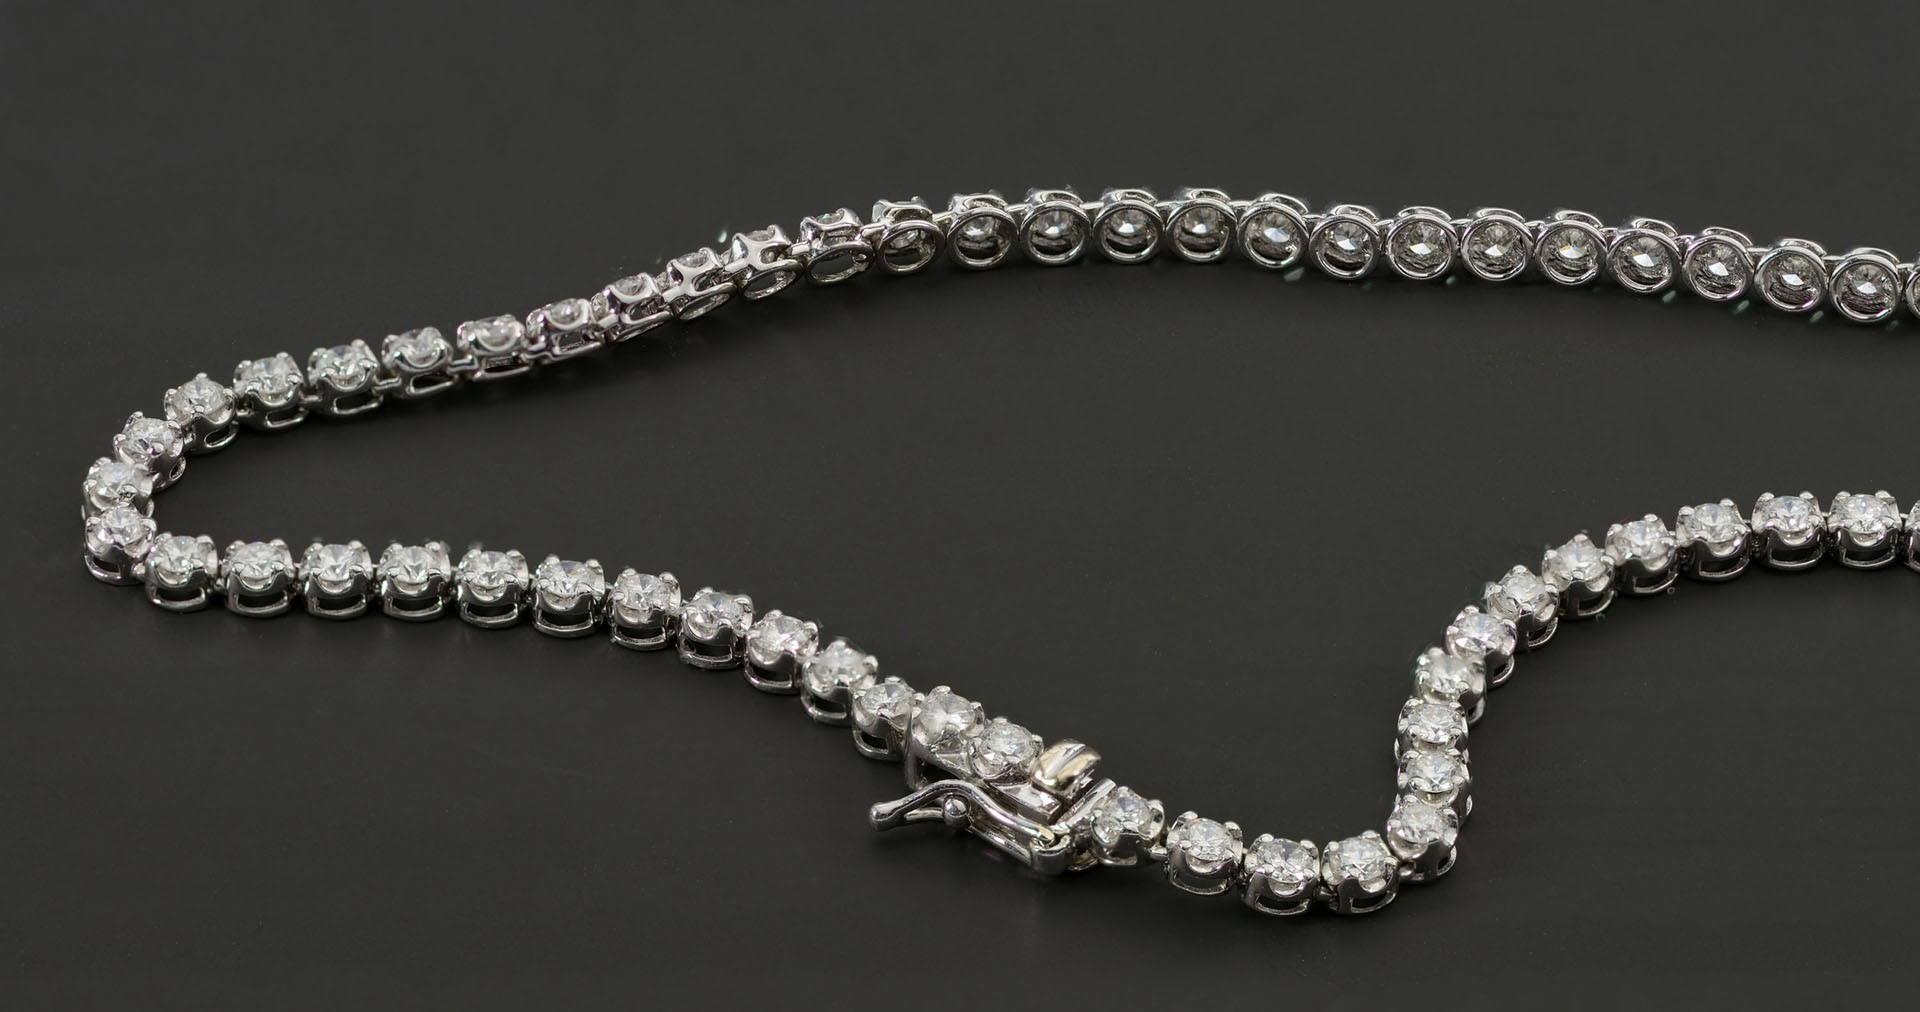 18KT white gold and diamond necklace, 134 diamonds